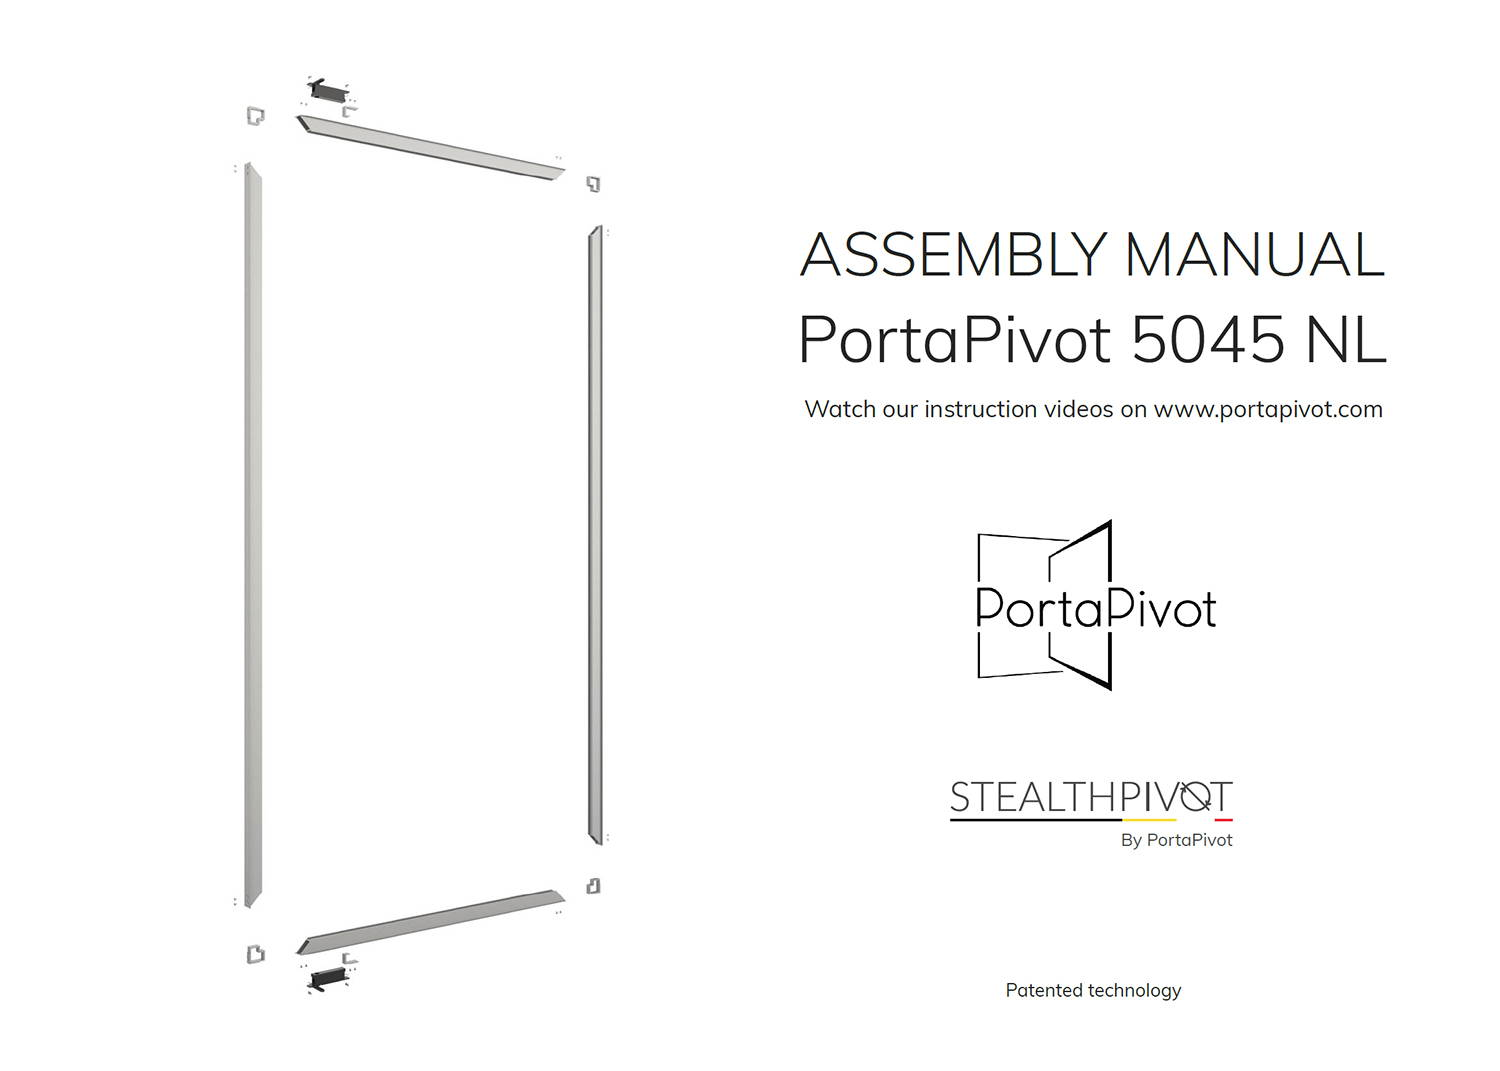 portapivot 5045 NL assembly manual